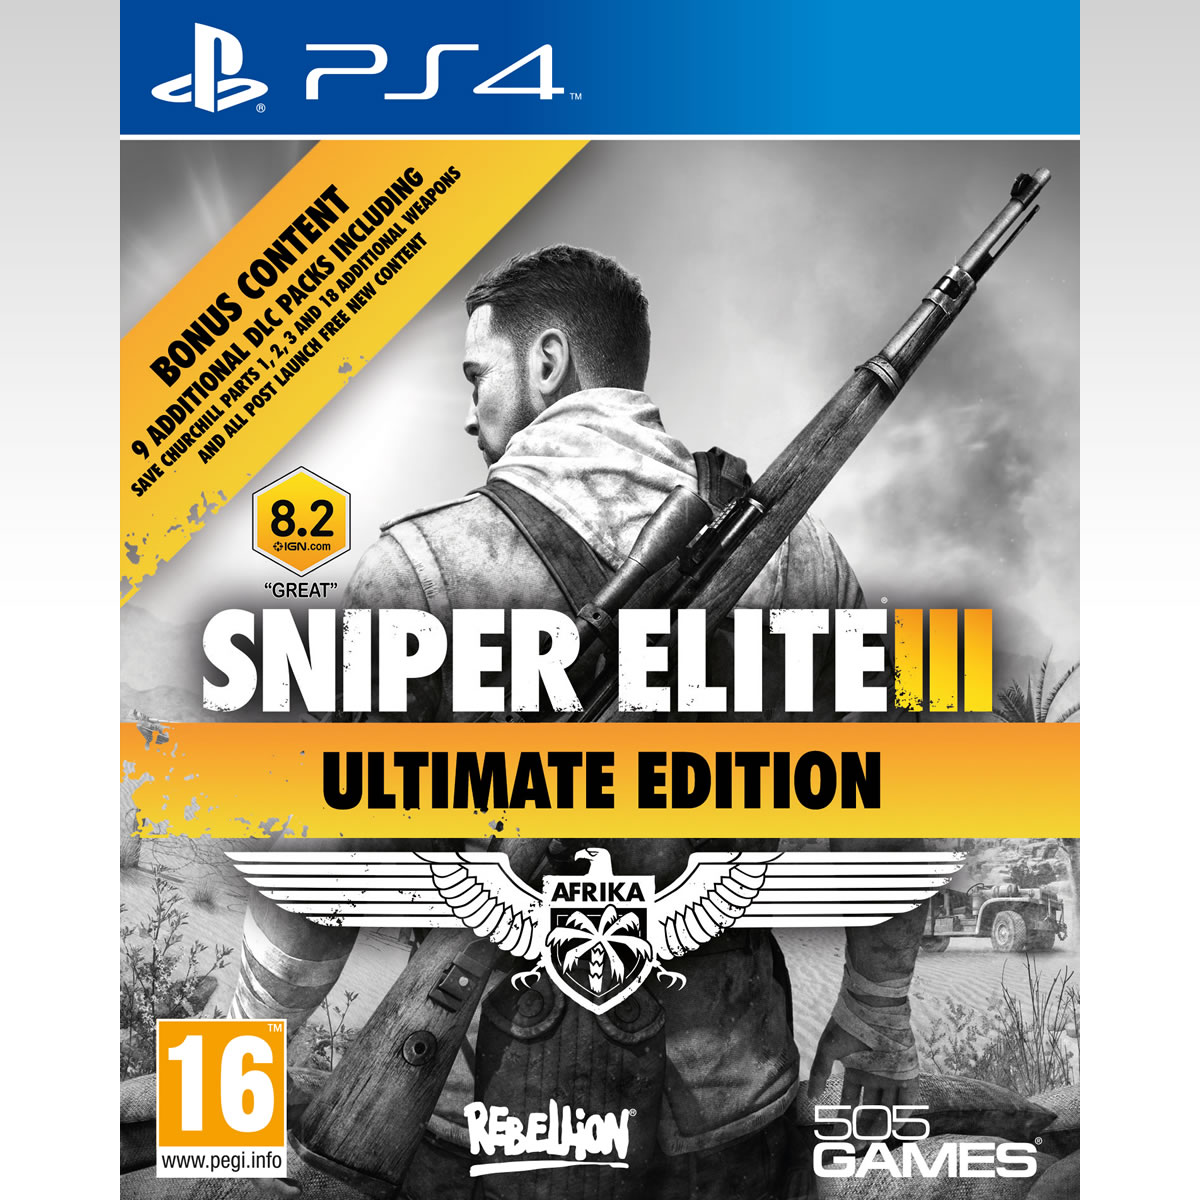 SNIPER ELITE III - ULTIMATE EDITION (PS4)